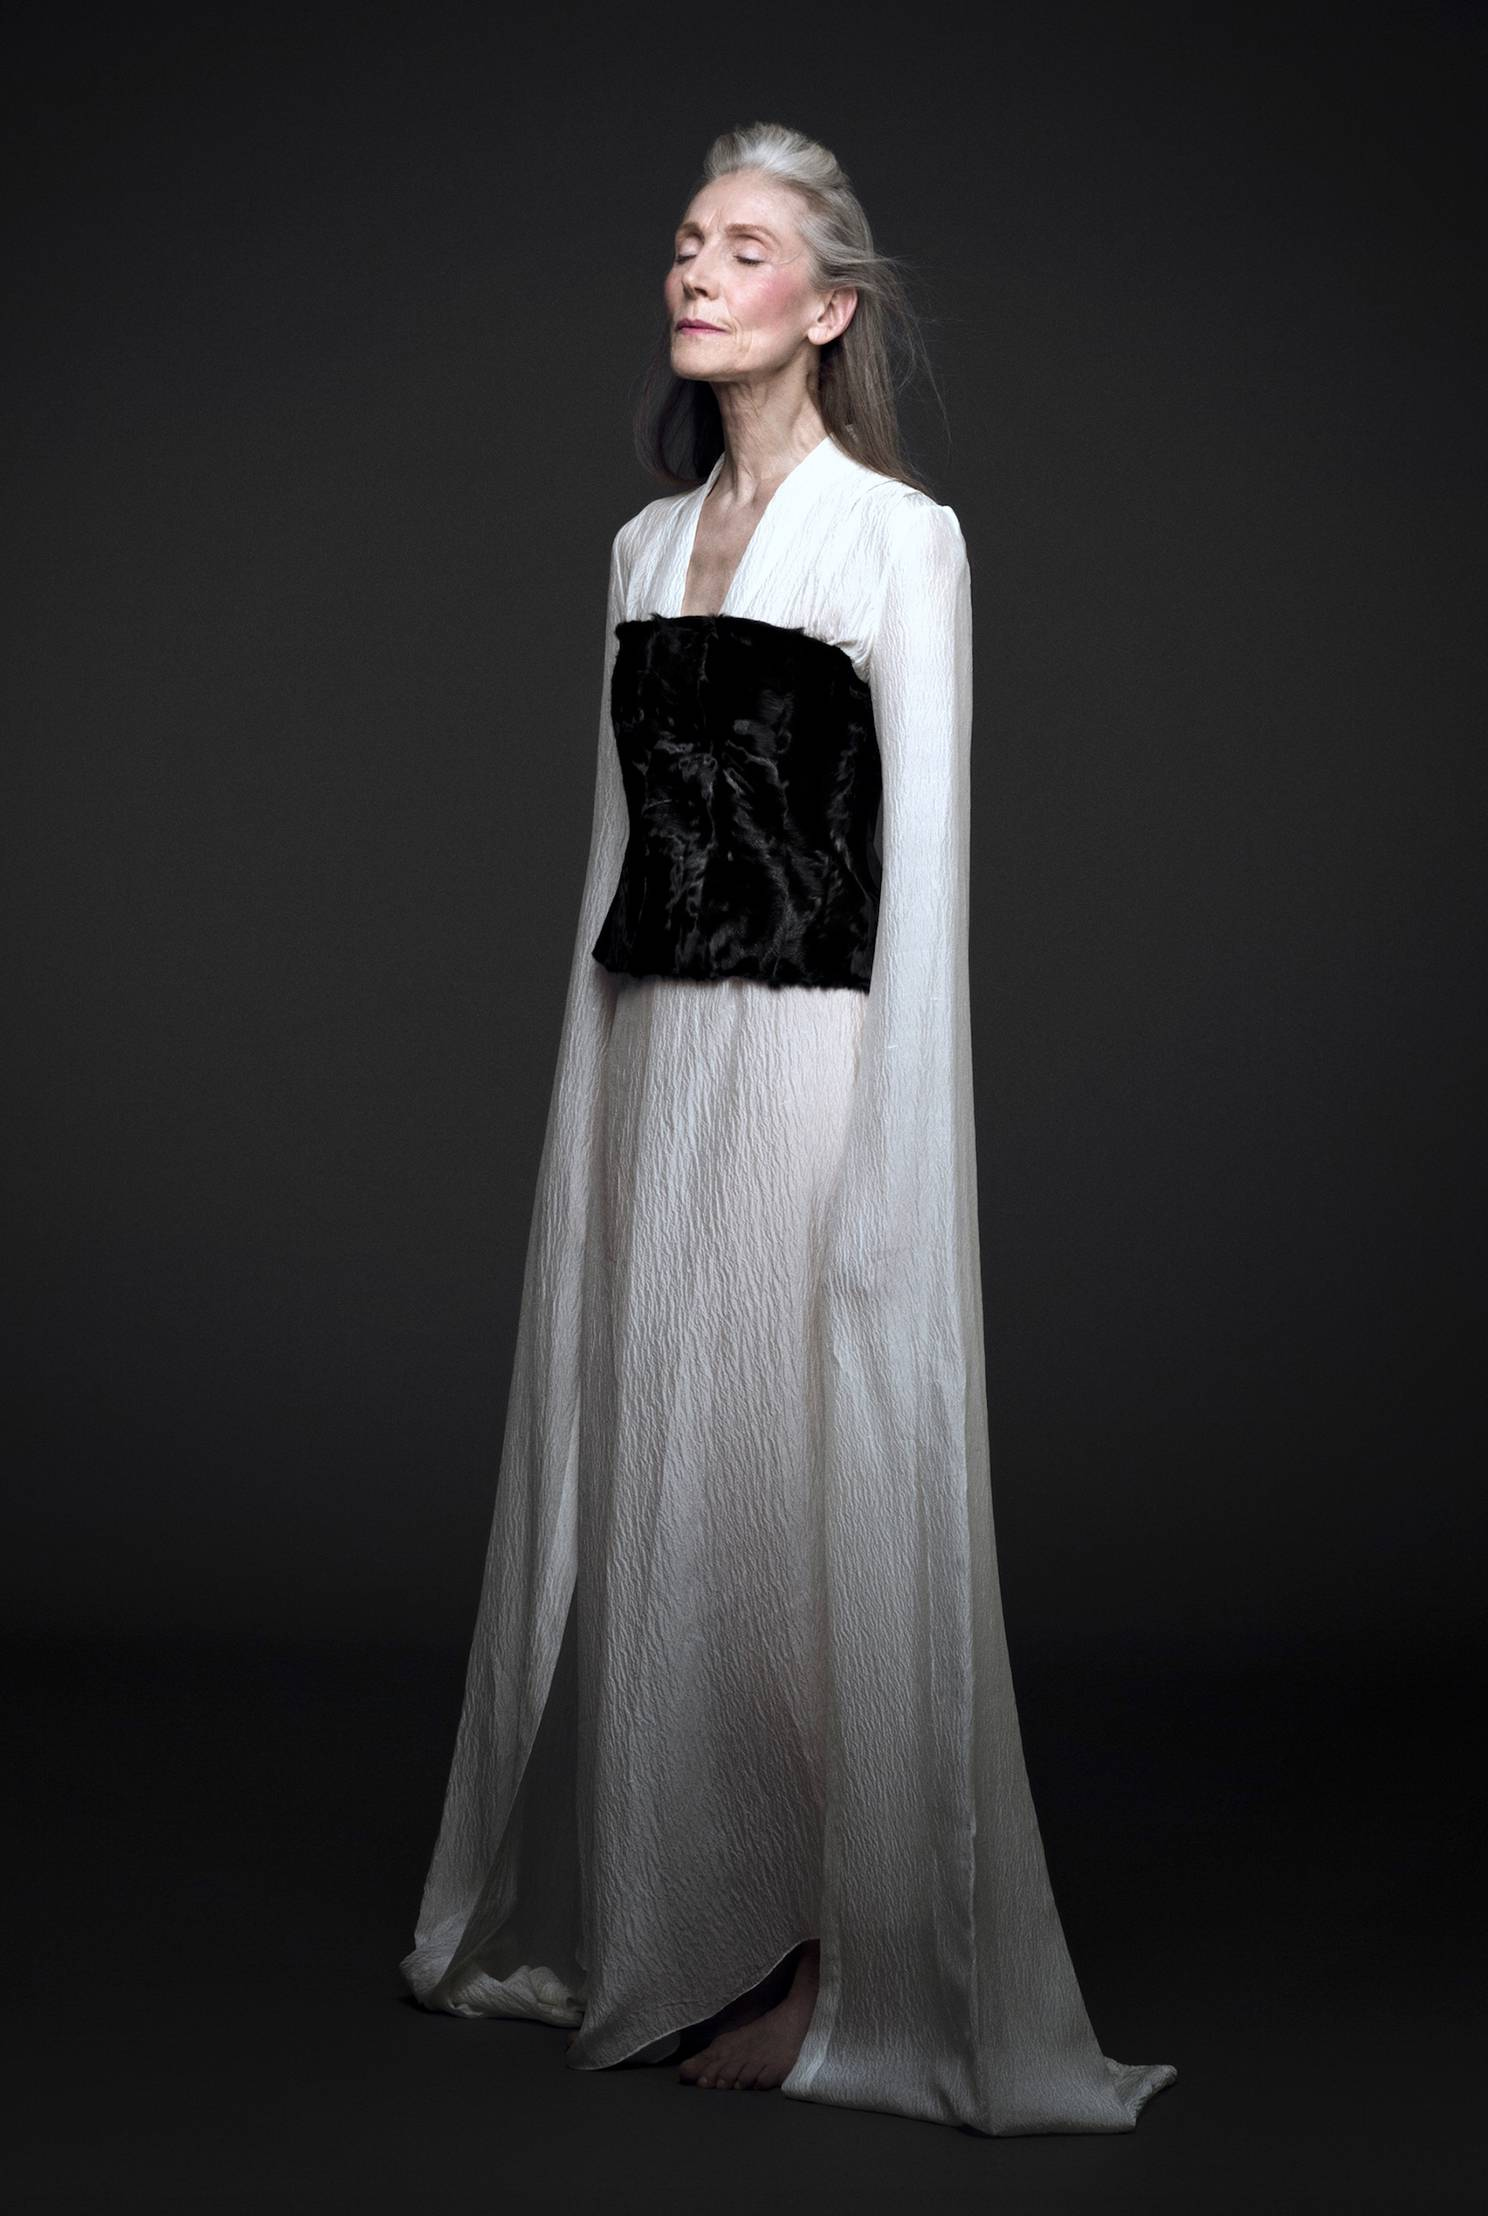 Shades of Black - S1-2 - Silk White Dress Long